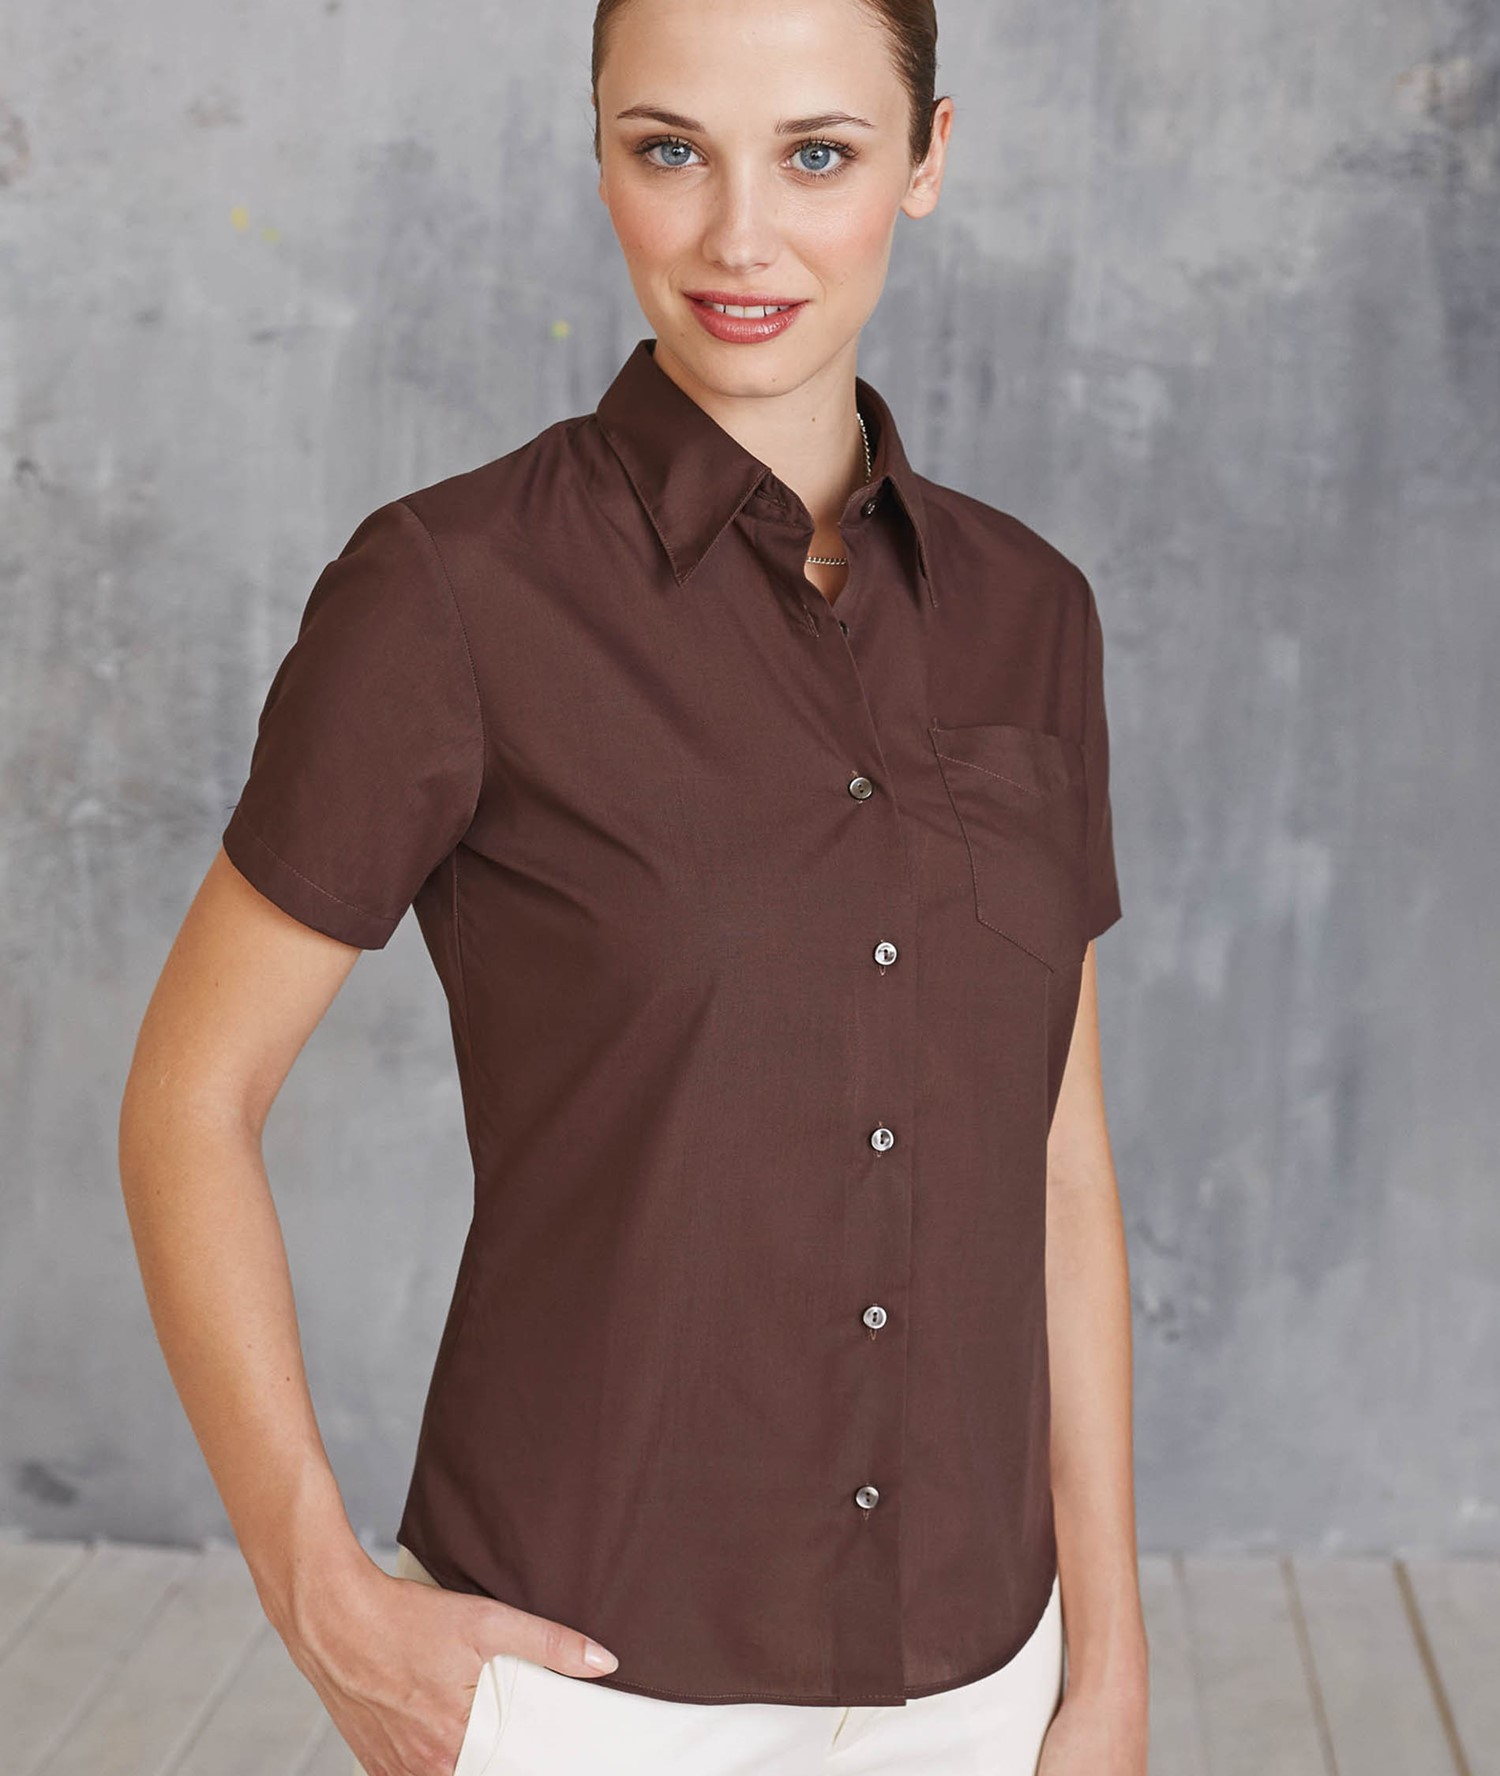 KARIBAN JUDITH LADIES SHORT SLEEVE EASY CARE POLYCOTTON POPLIN SHIRT